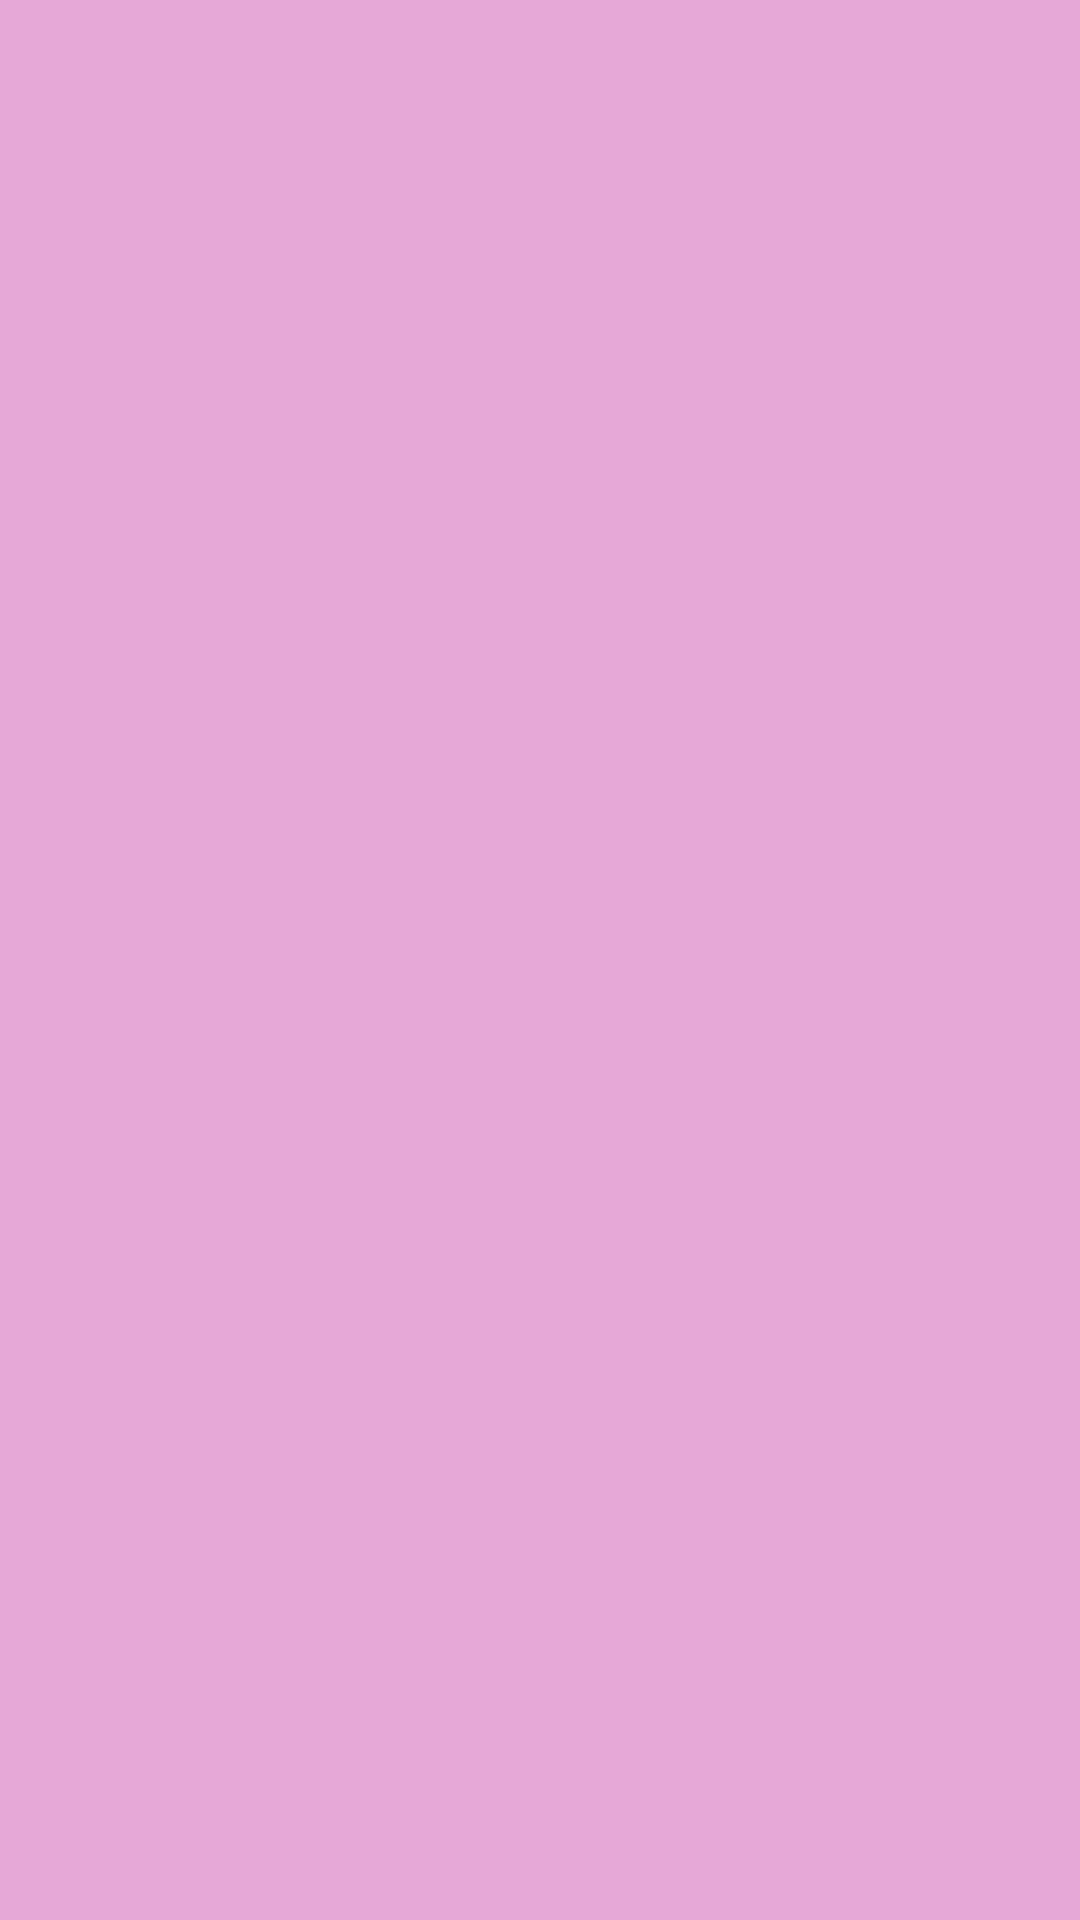 1080x1920 Light Orchid Solid Color Background